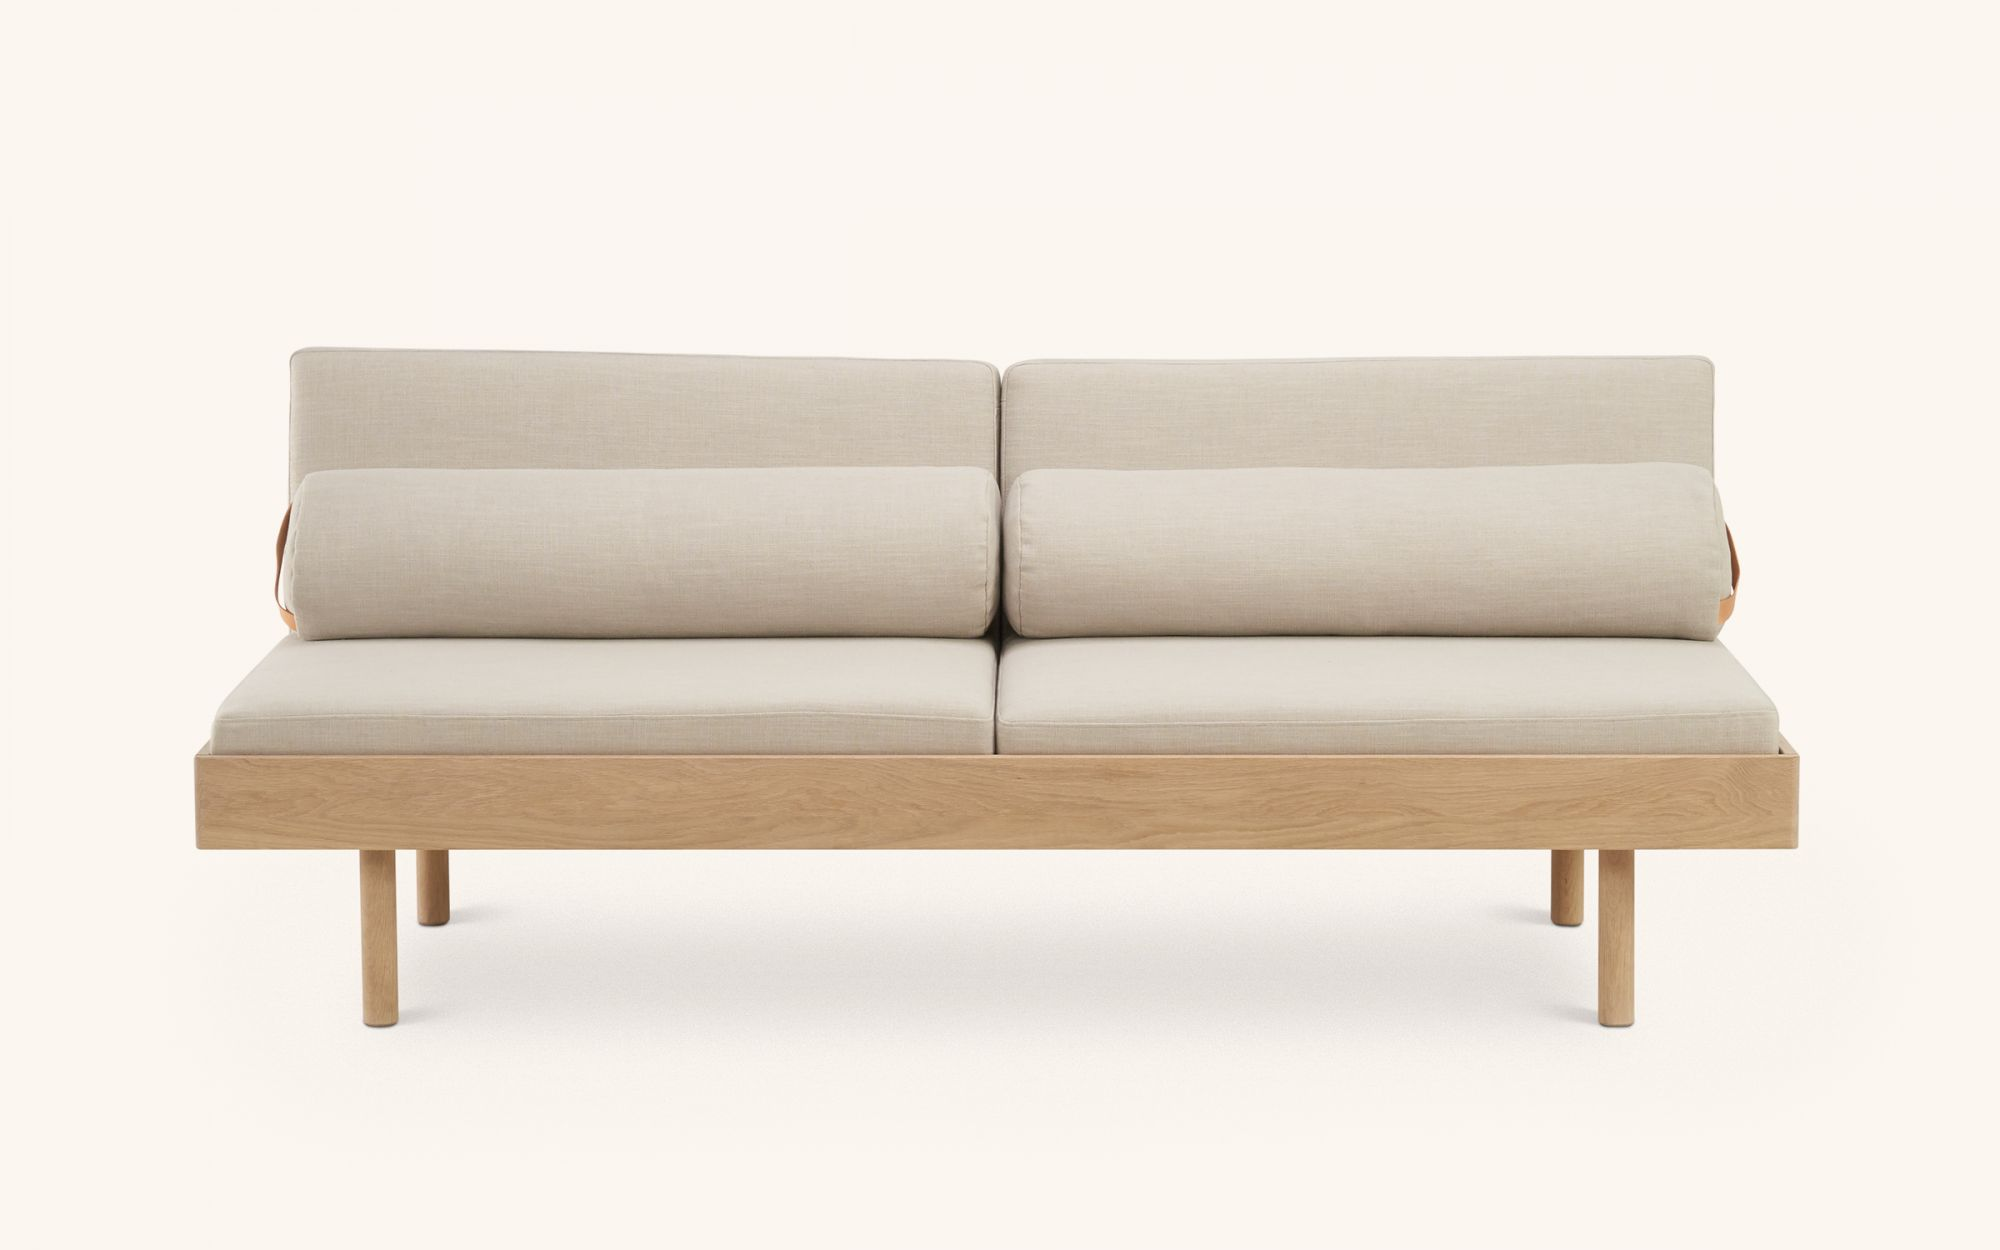 Frendi Sofabed - oak beige front view